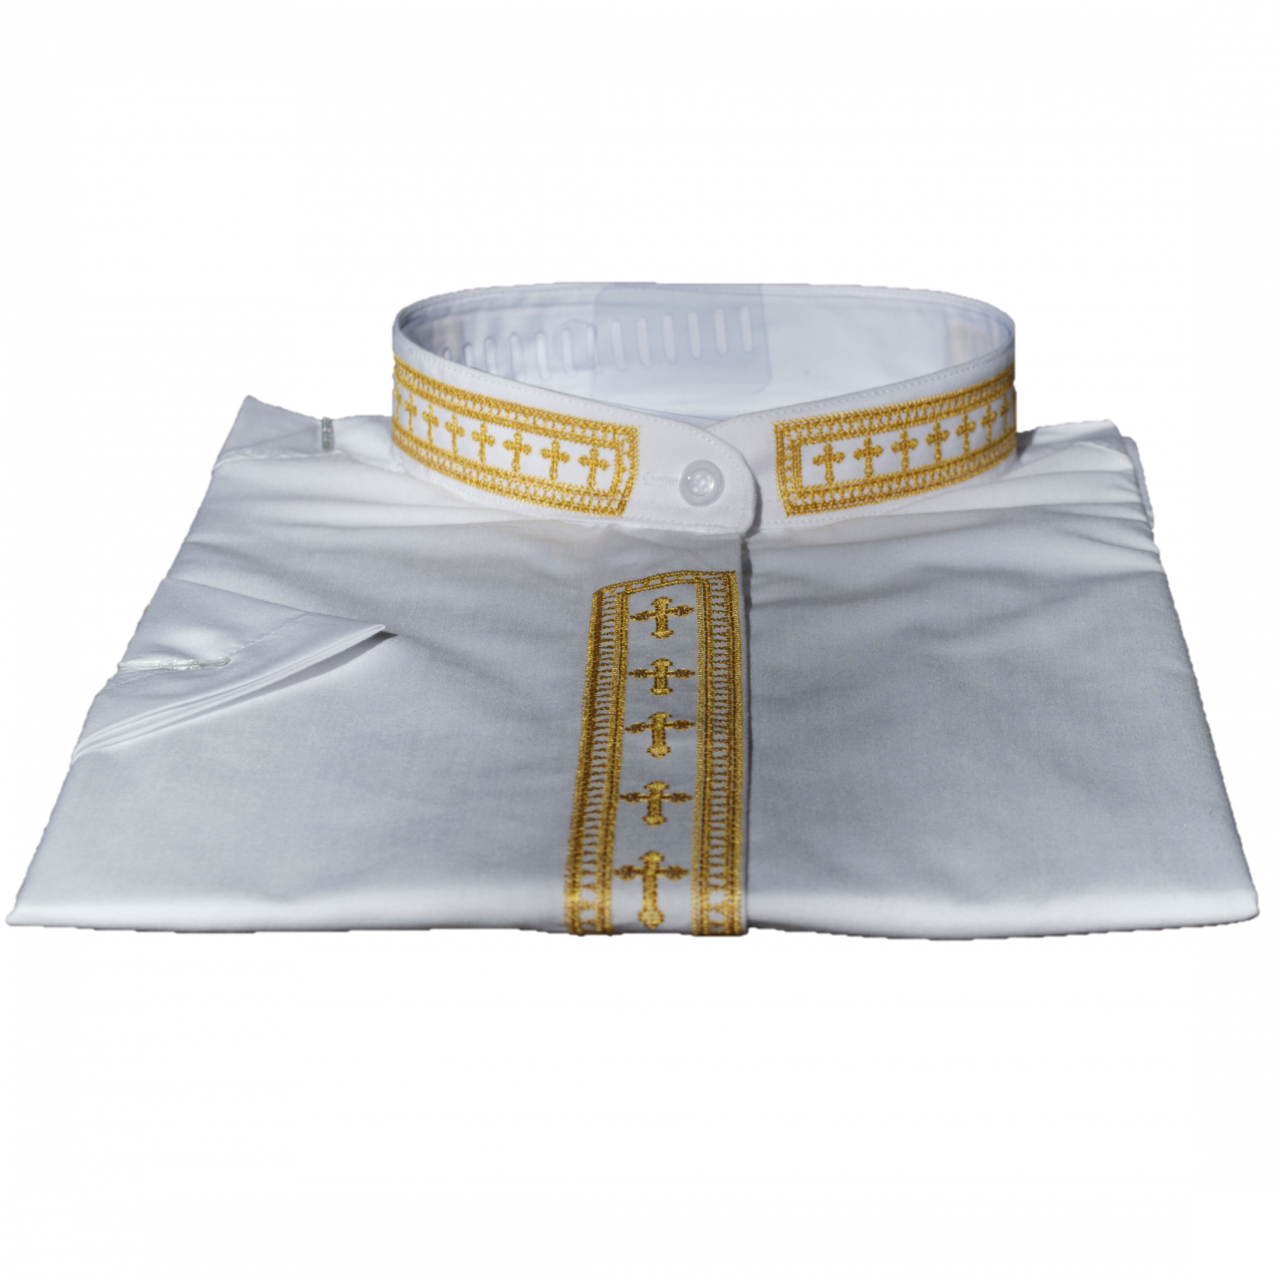 754. Women's Short-Sleeve Clergy Shirt With Fine Embroidery - White/Gold